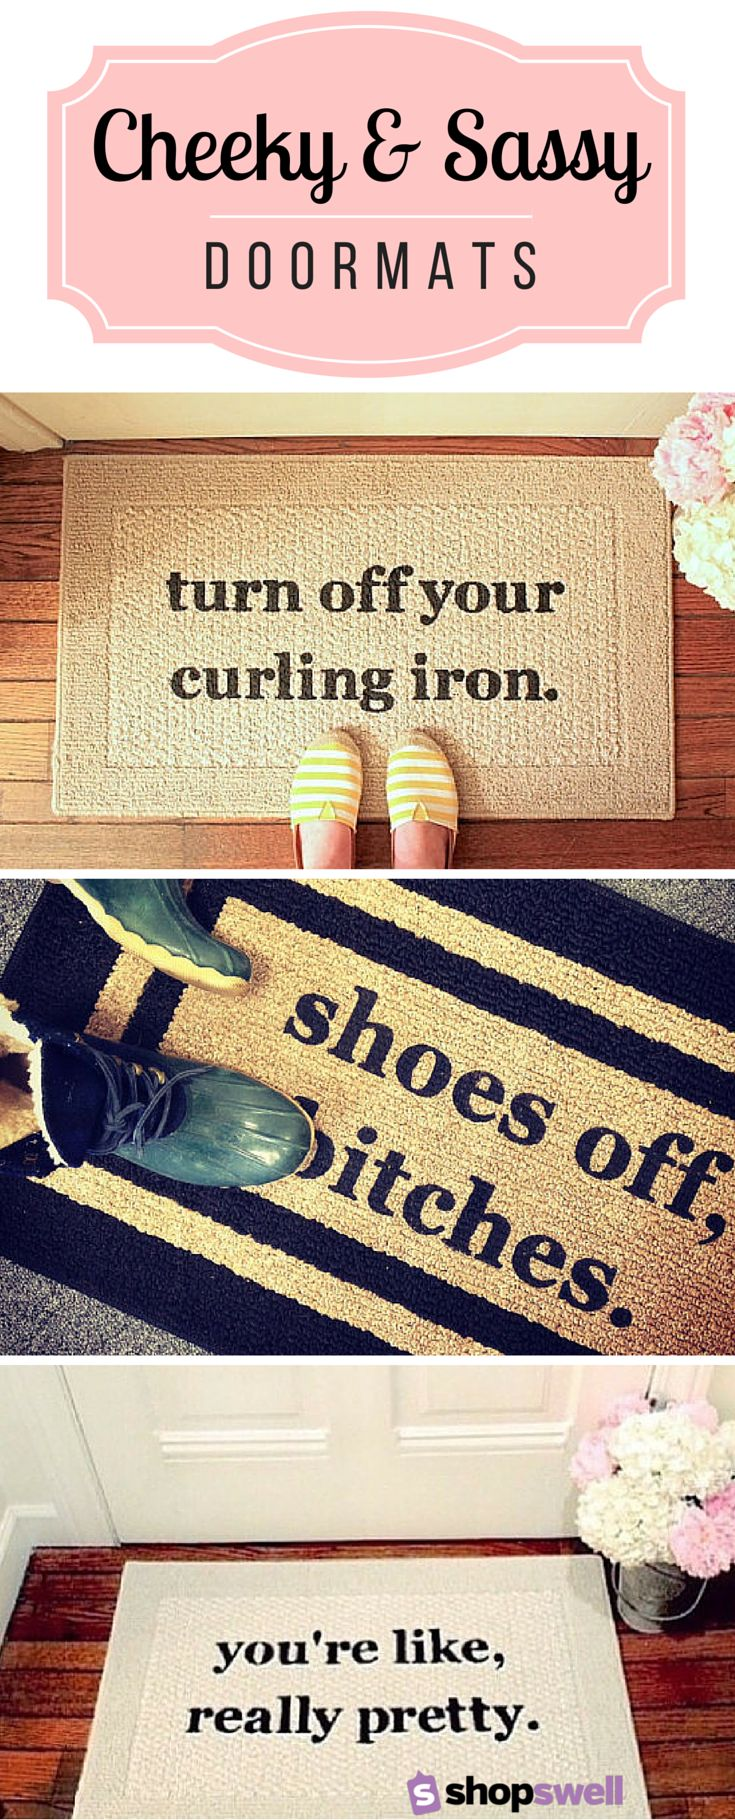 Who says your doormat can't feature a little sass? Click through to see 30 fun doormats for your home.